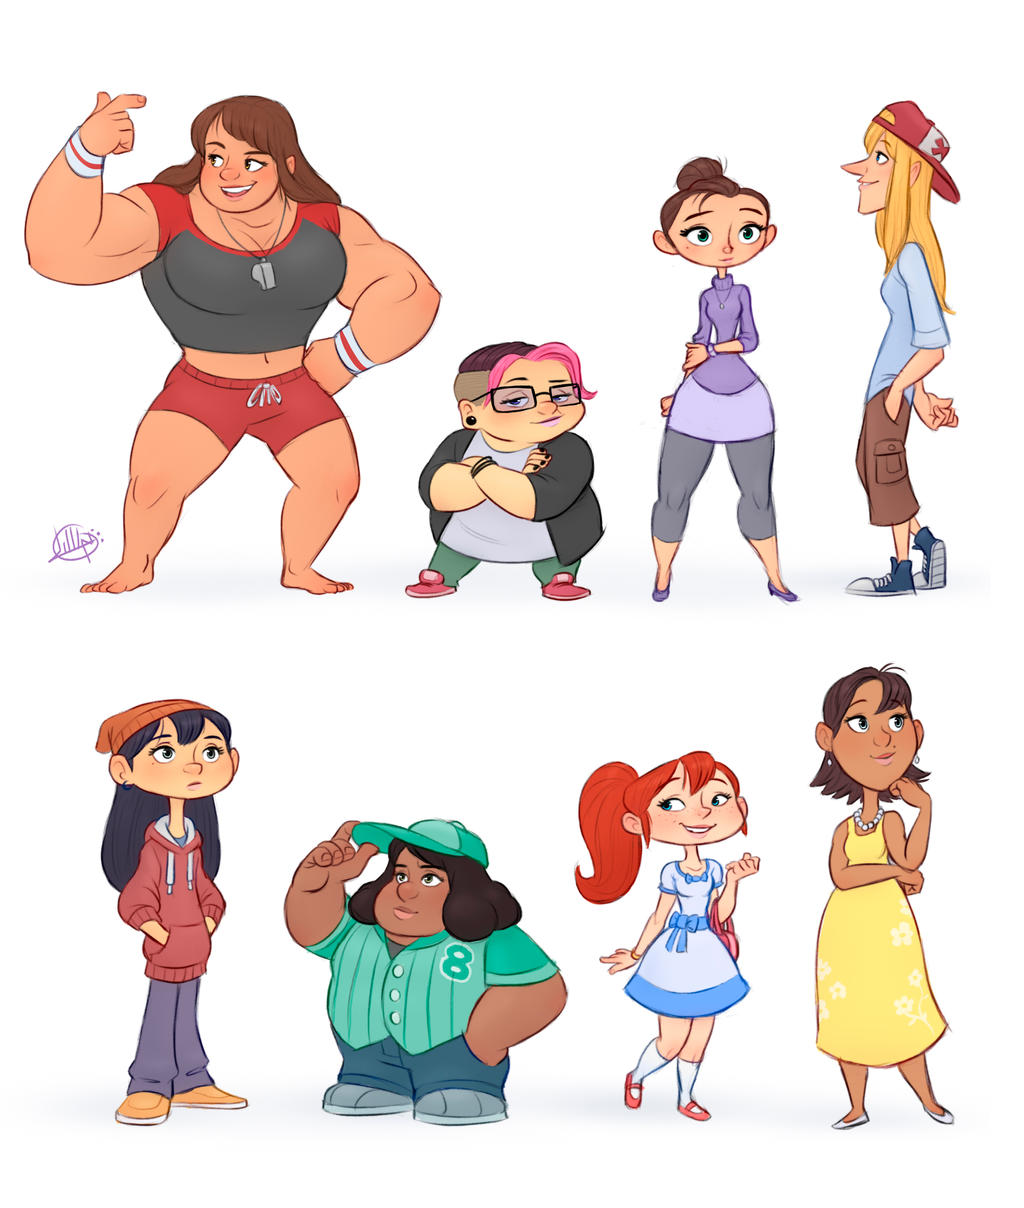 Character Design Reference Photos : Random characters by luigil on deviantart